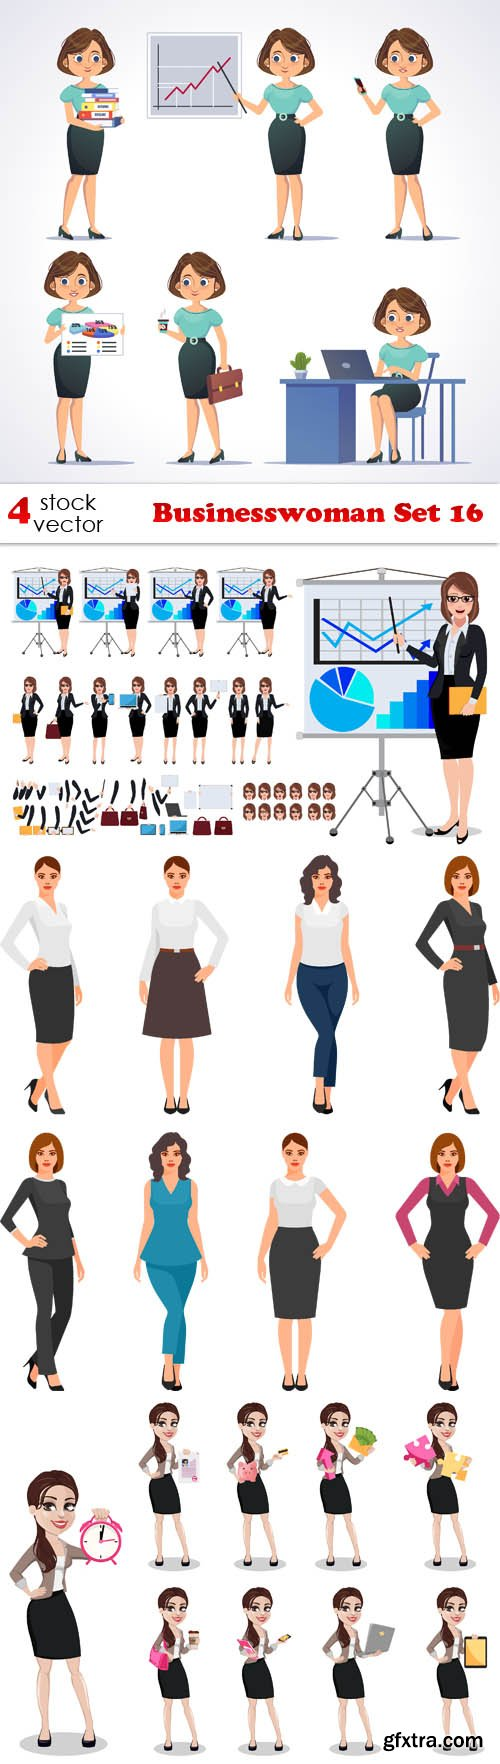 Vectors - Businesswoman Set 16